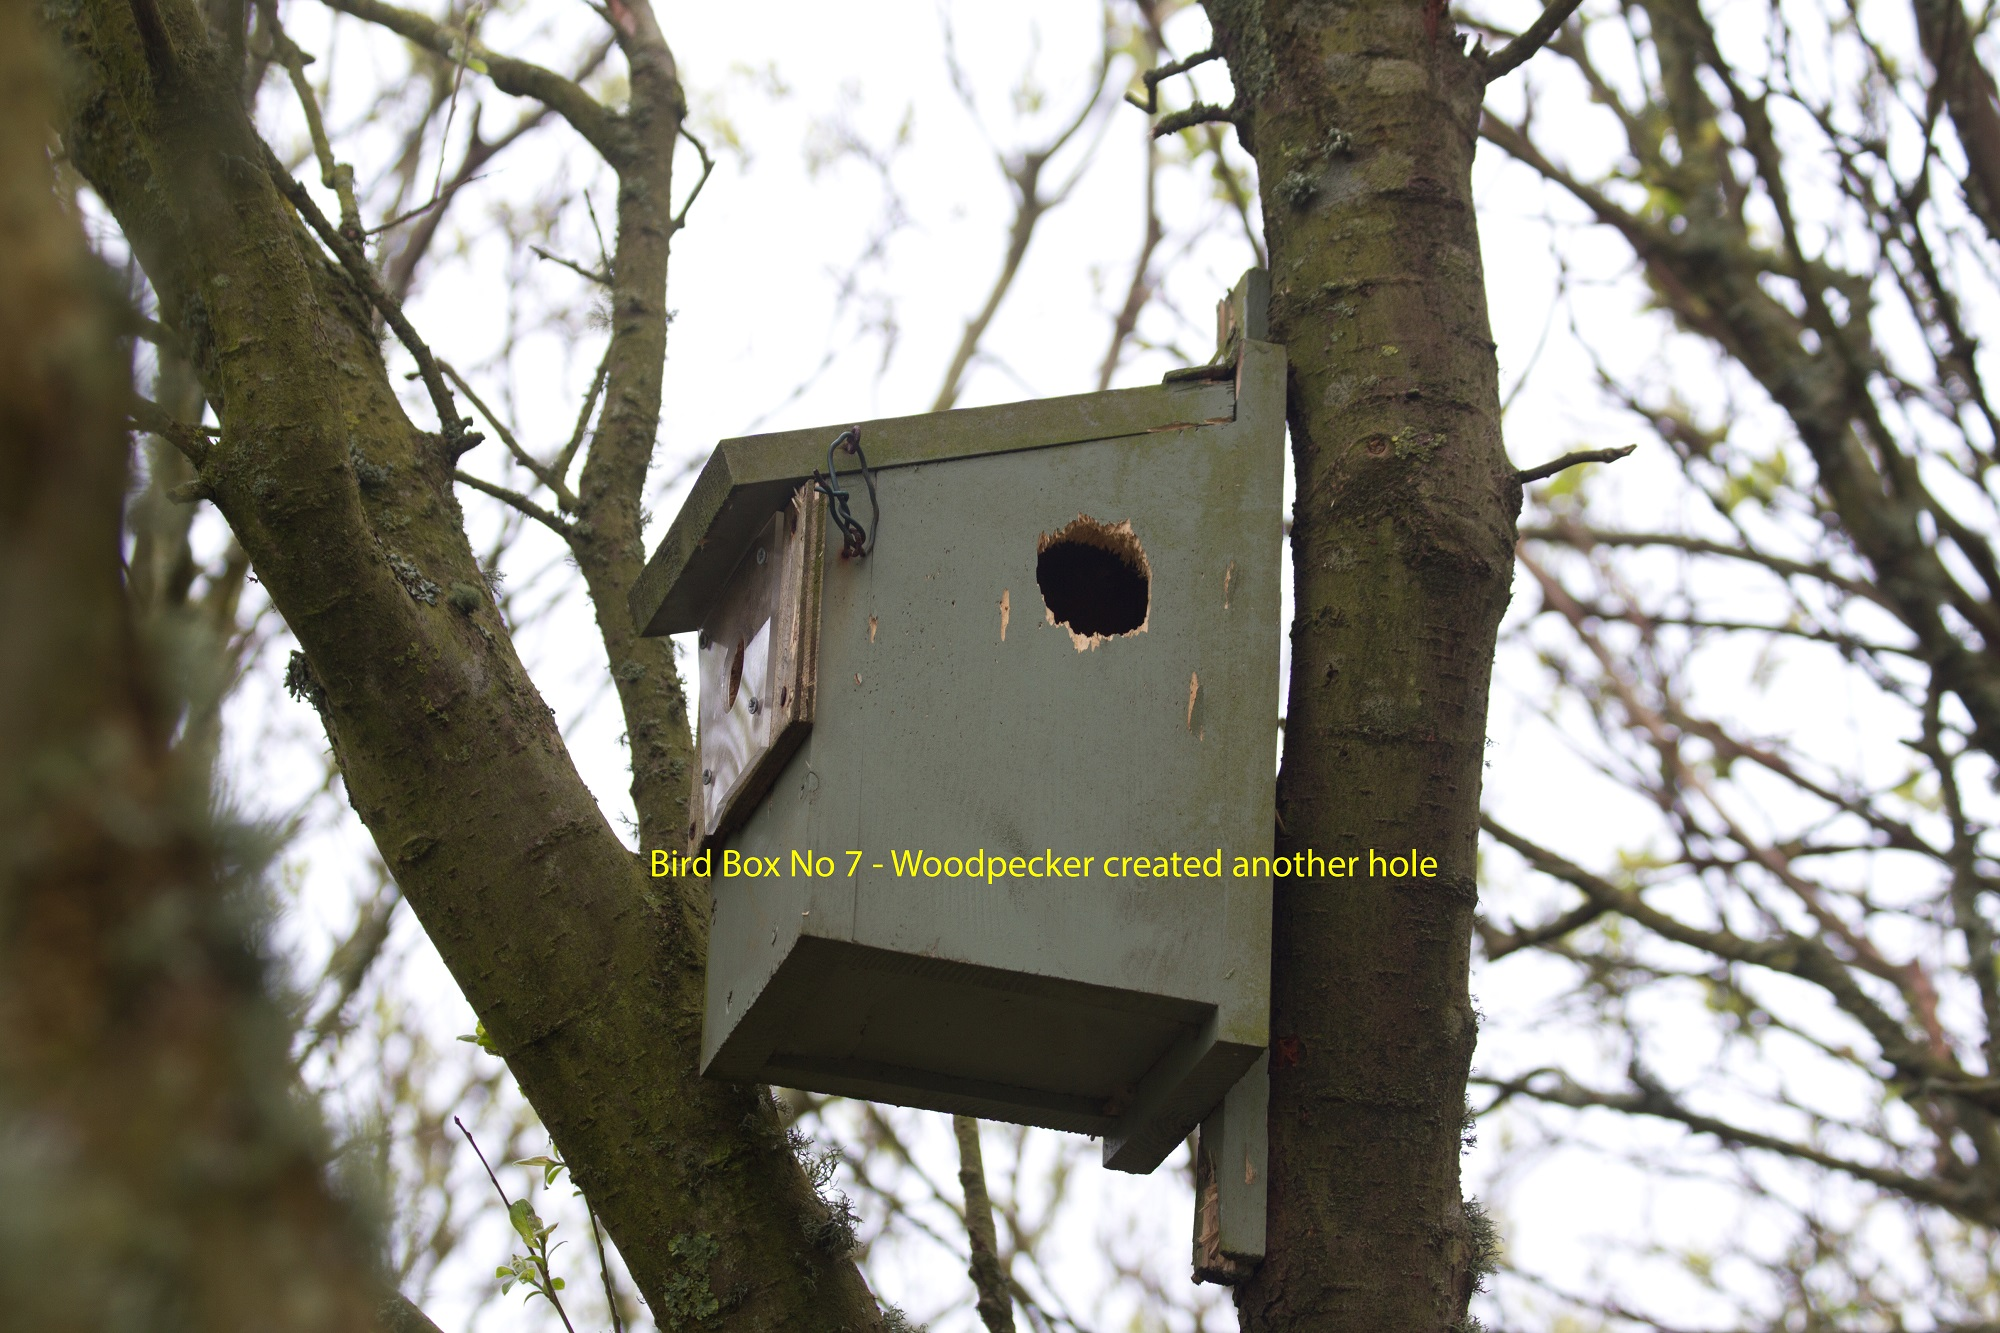 002-bird-box-no-7-with-hole-made-by-woodpecker-1-1-d5ab2f4a59d7eee322b2bdcc26c8e5f8e807c538